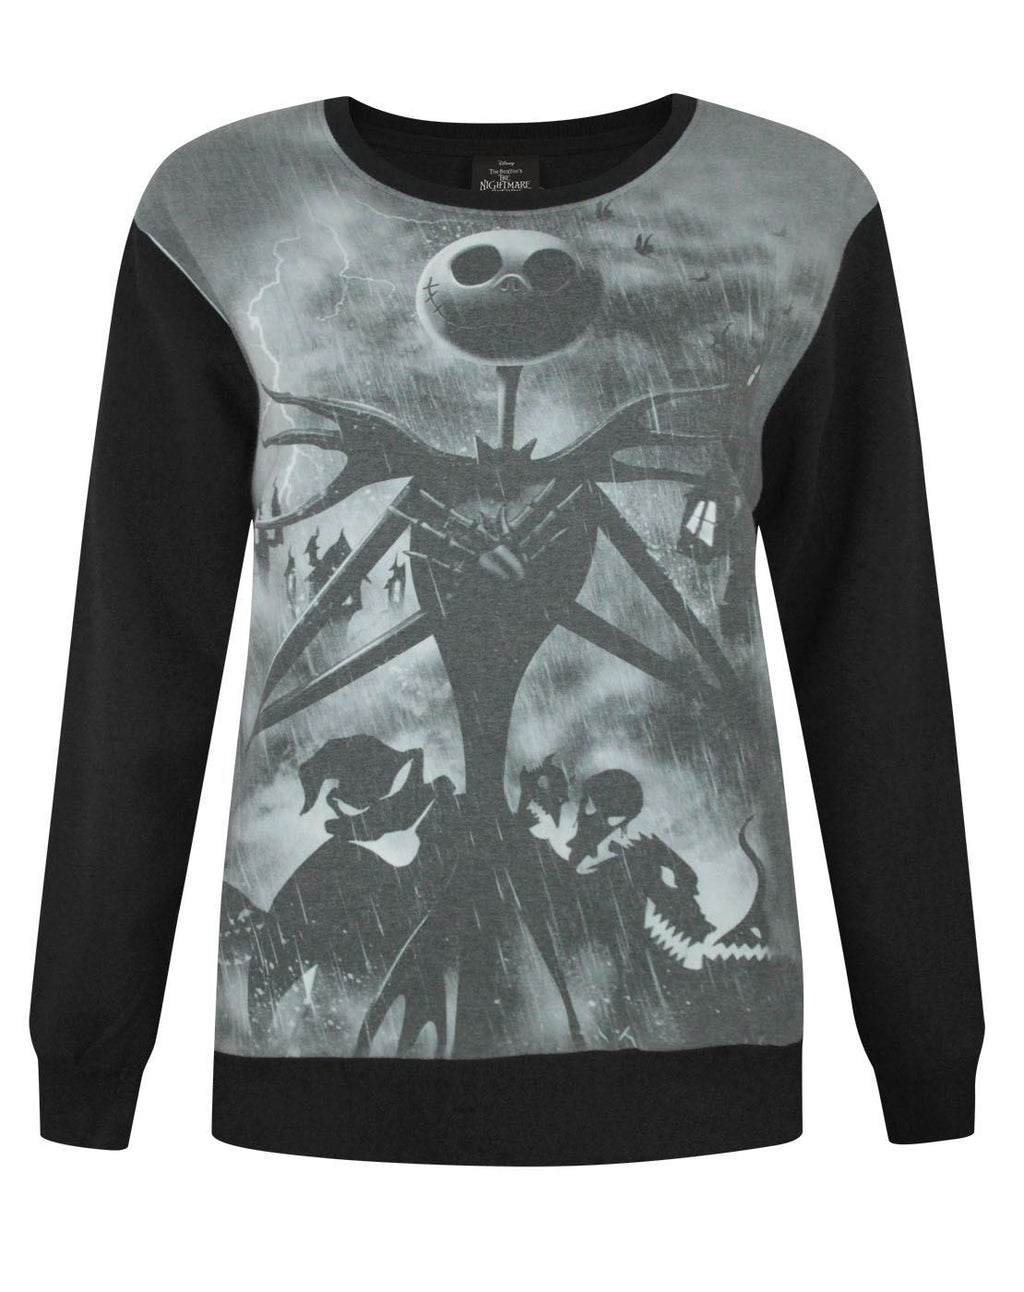 Nightmare Before Christmas Sublimation Women's Sweater